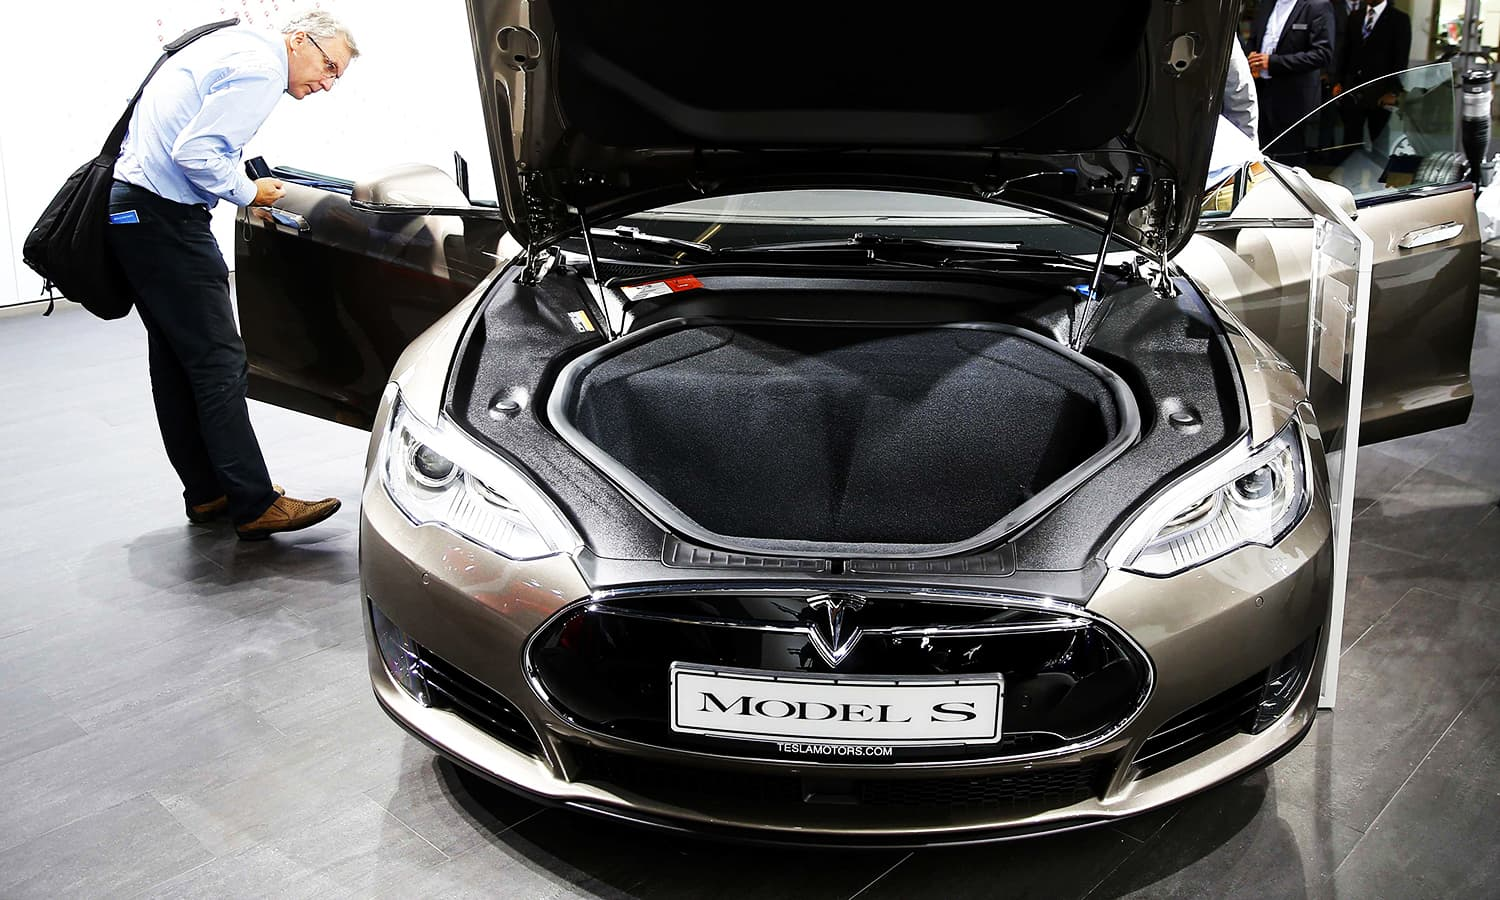 The Tesla Motors Model S is presented during the media day. ─ Reuters